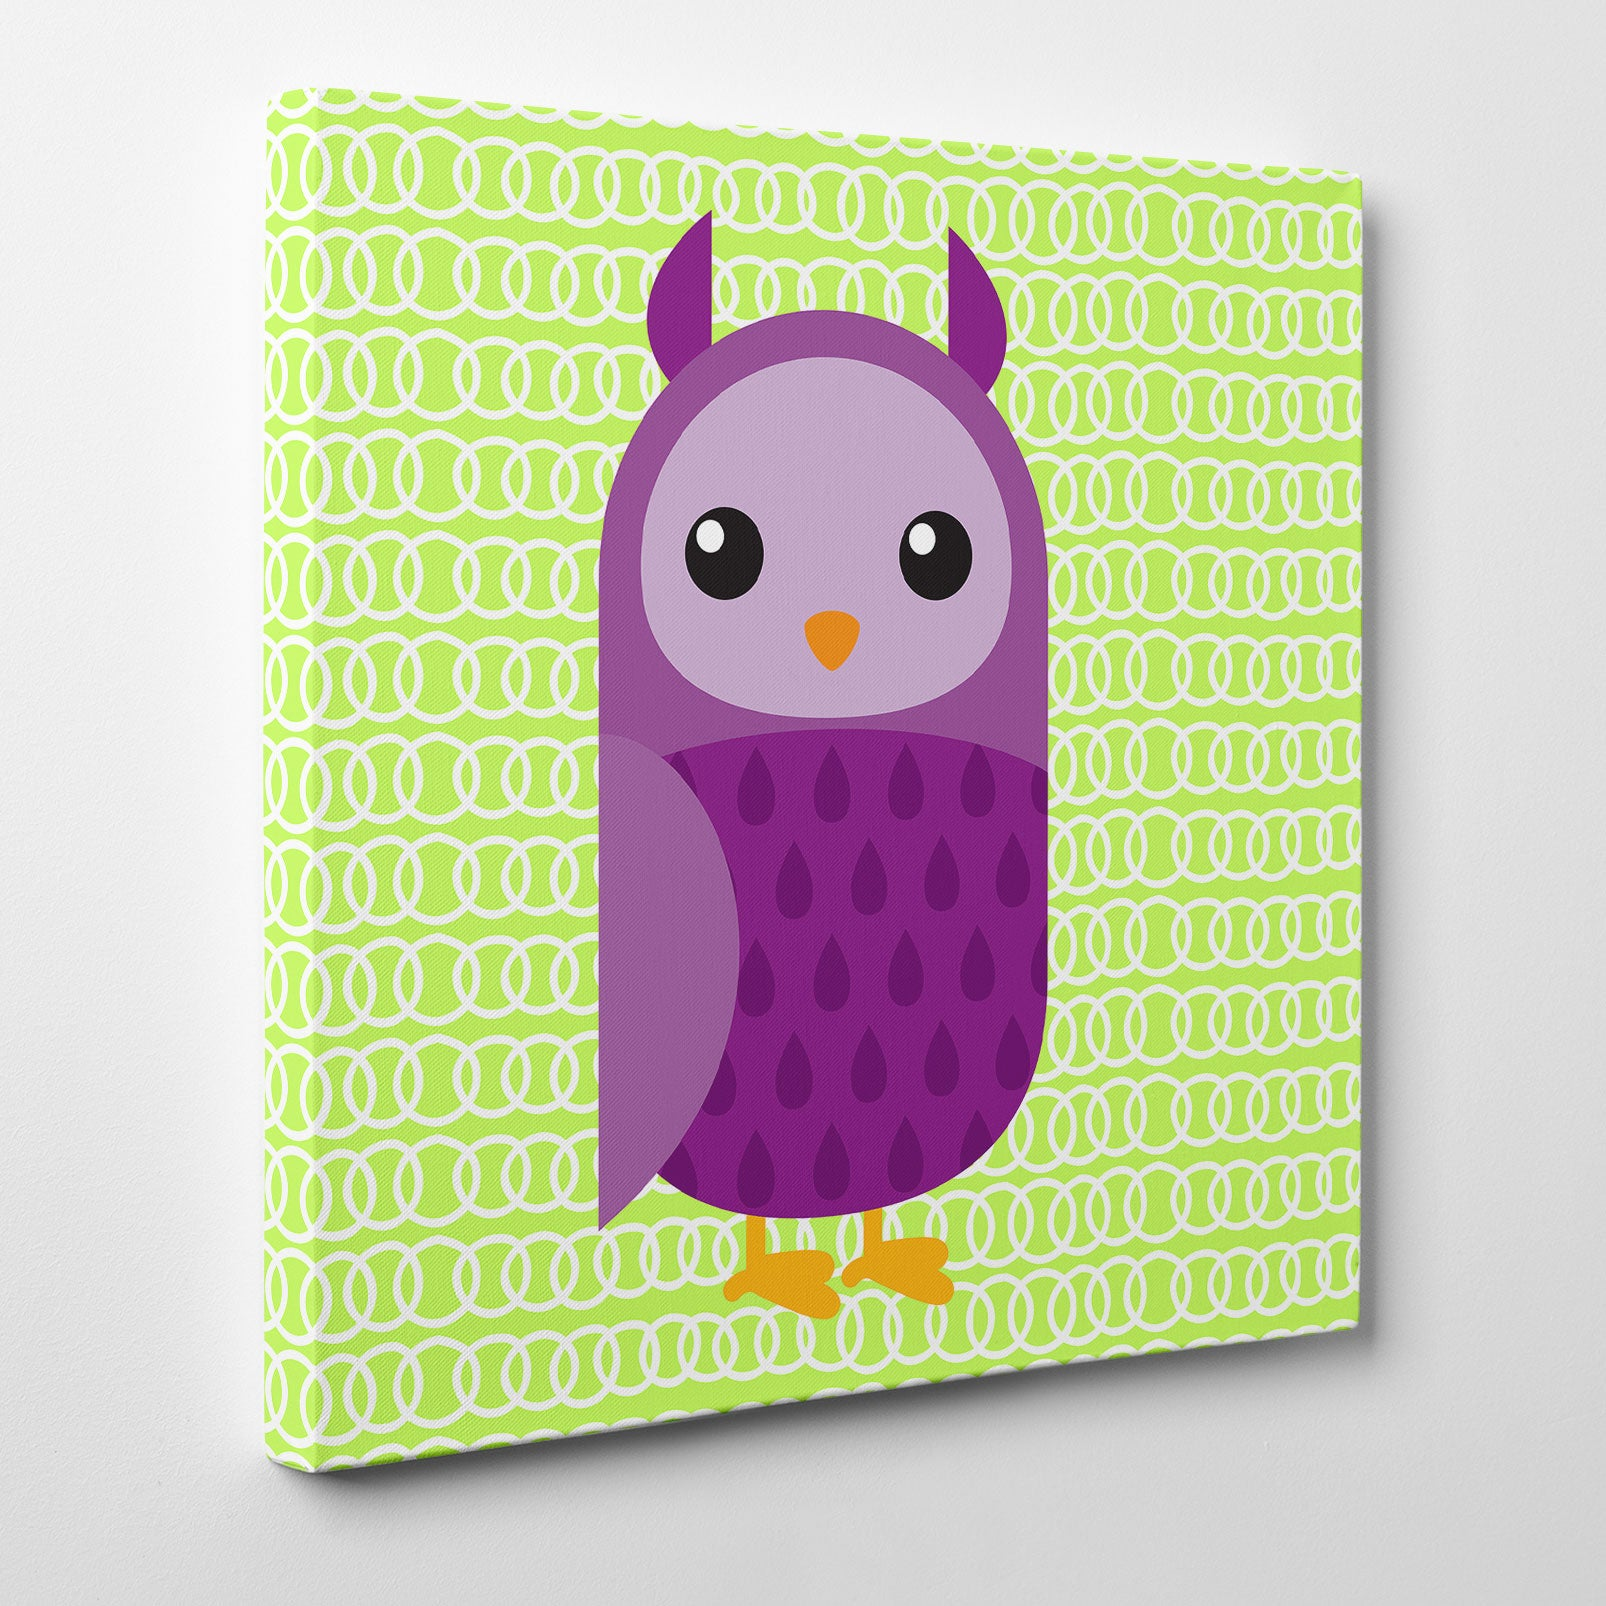 Canvas print with a purple owl on green patterned background - side view